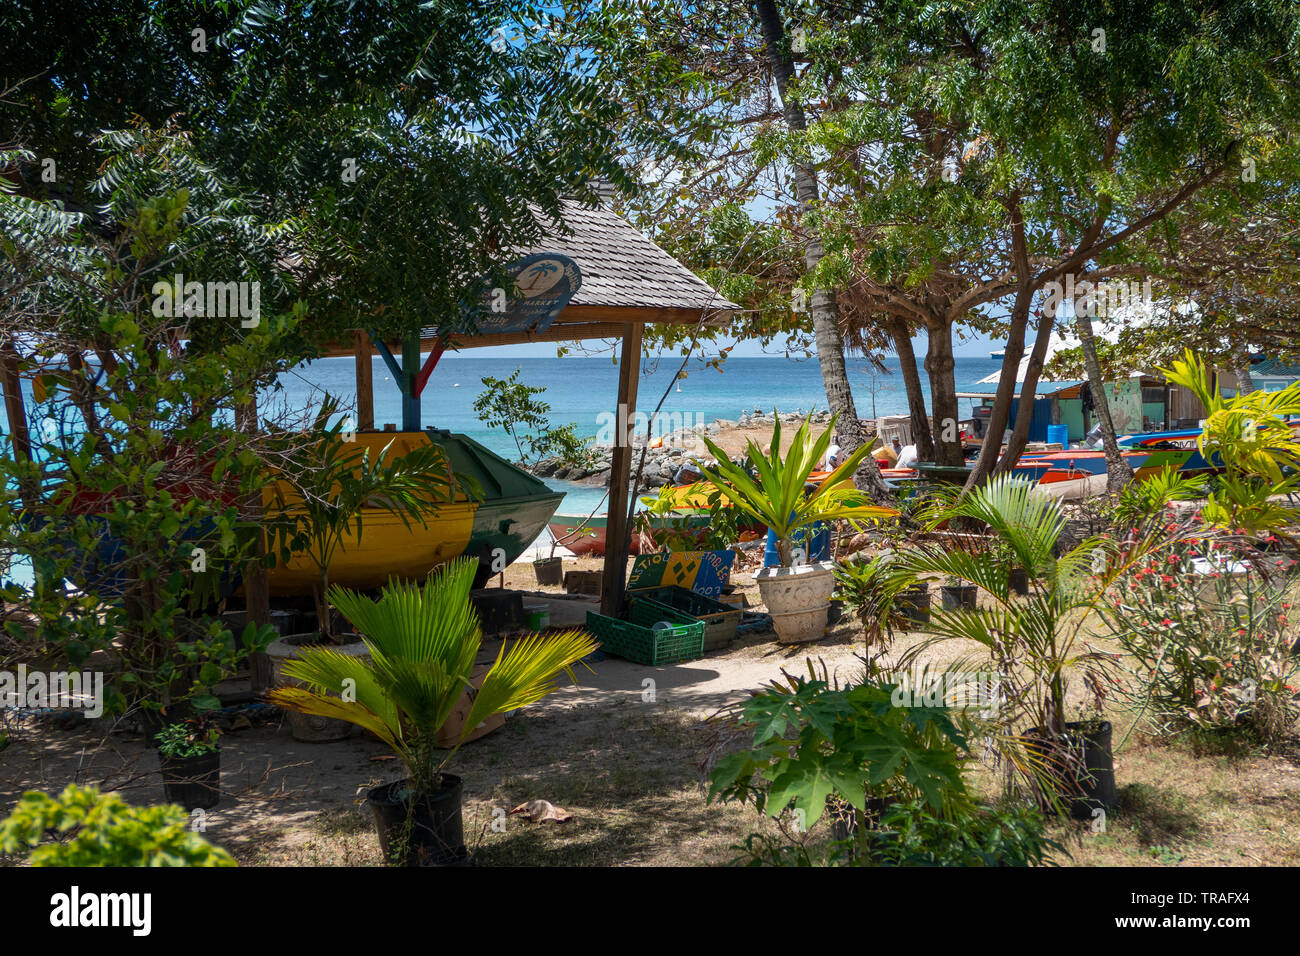 Lovell Village on the beach front on the Island of Mustique - Stock Image